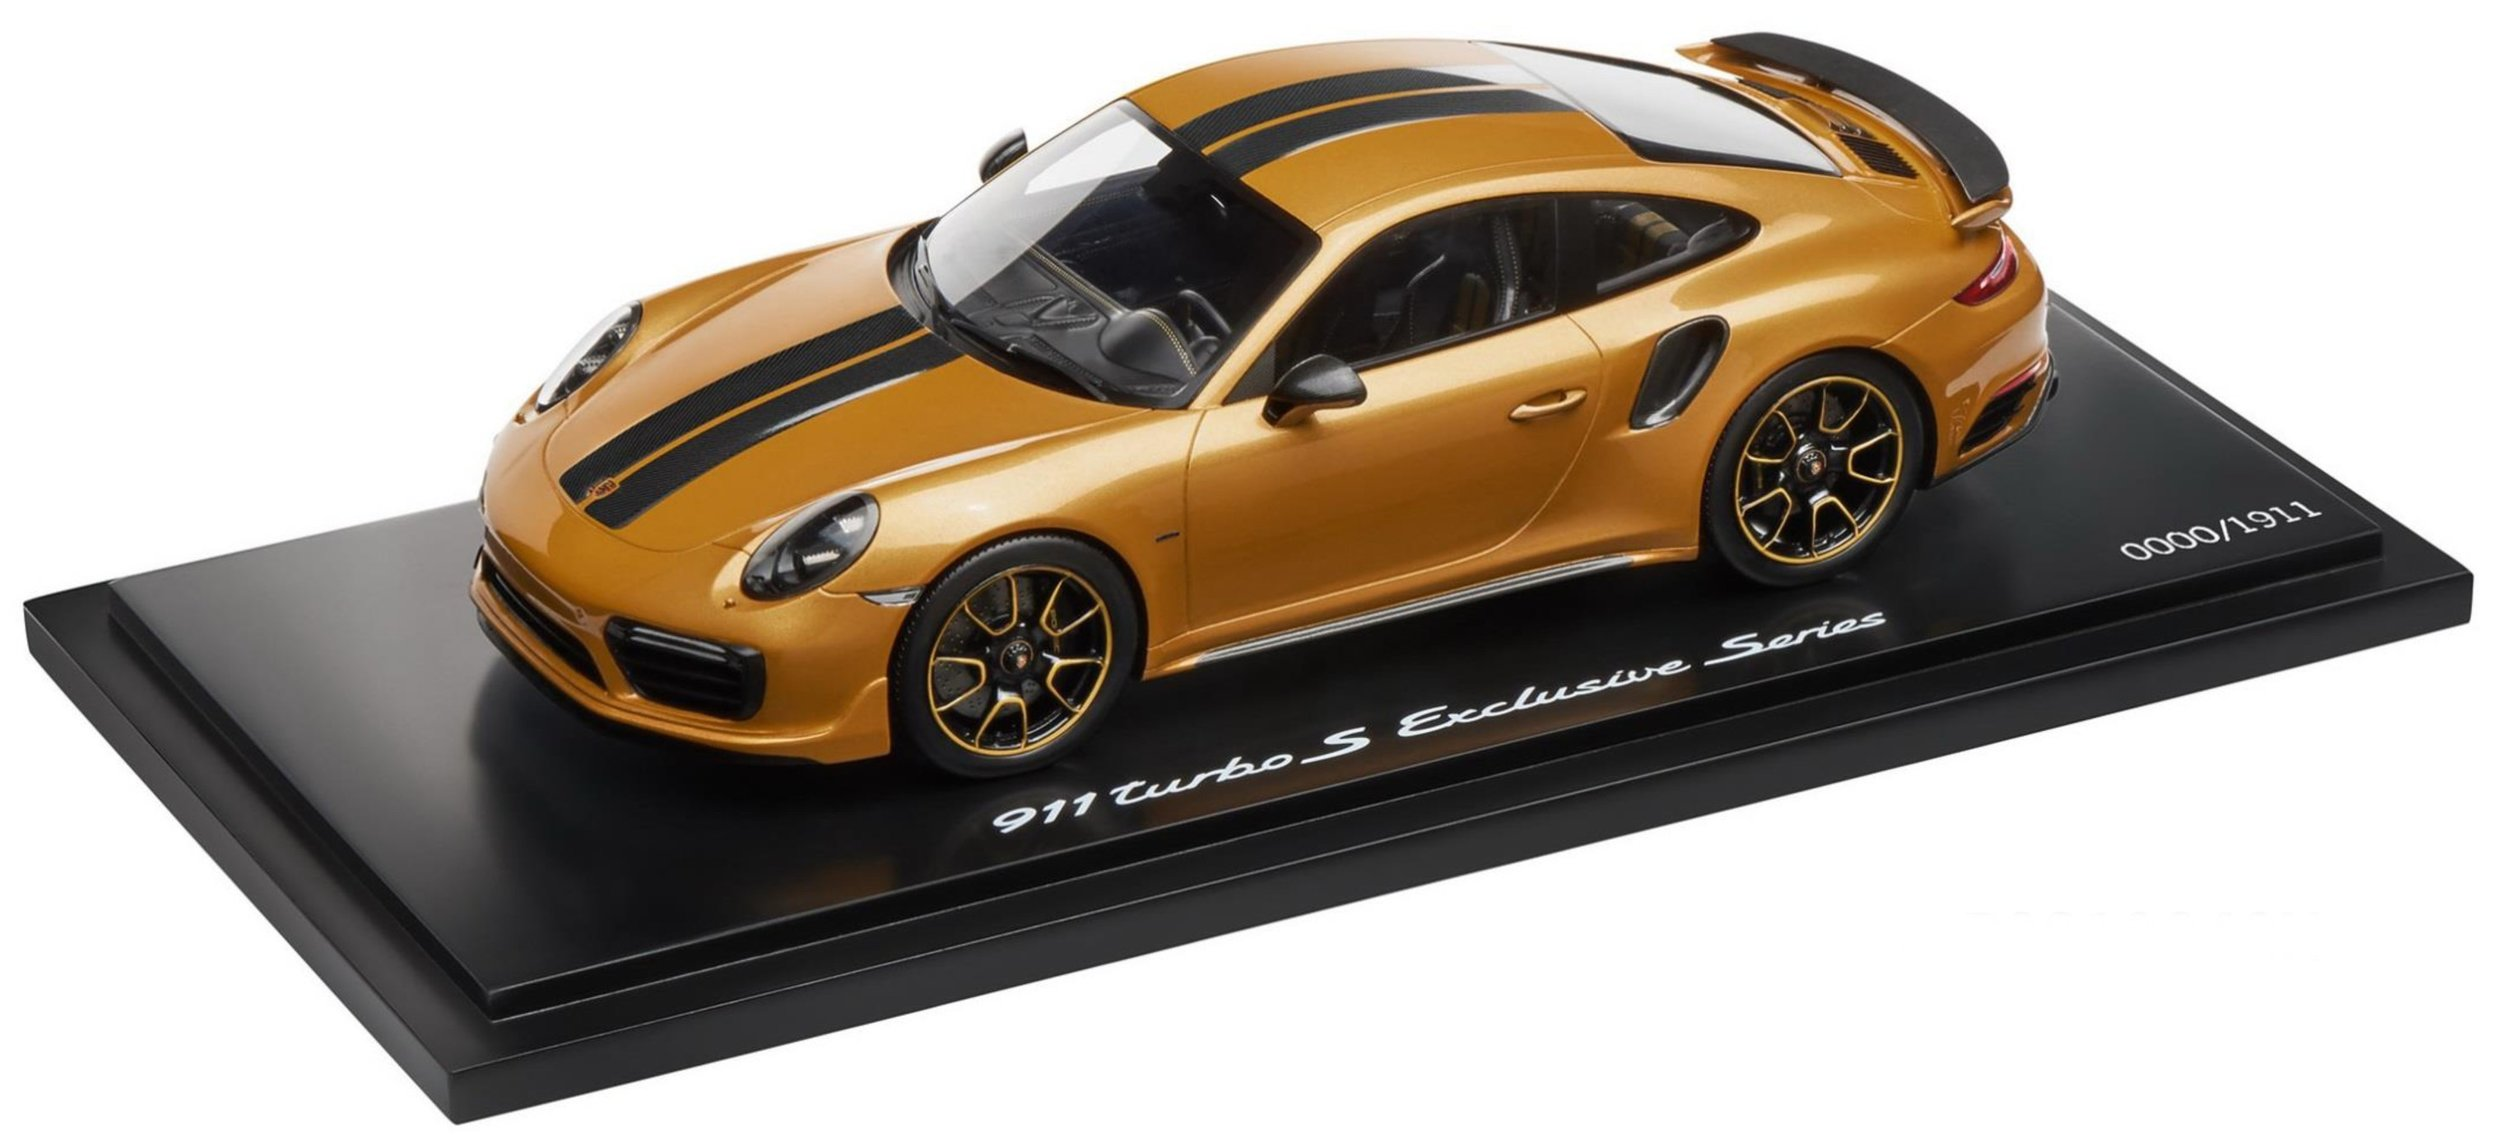 WAP0209070H    Porsche 911 Turbo S Exclusive Series, Spark